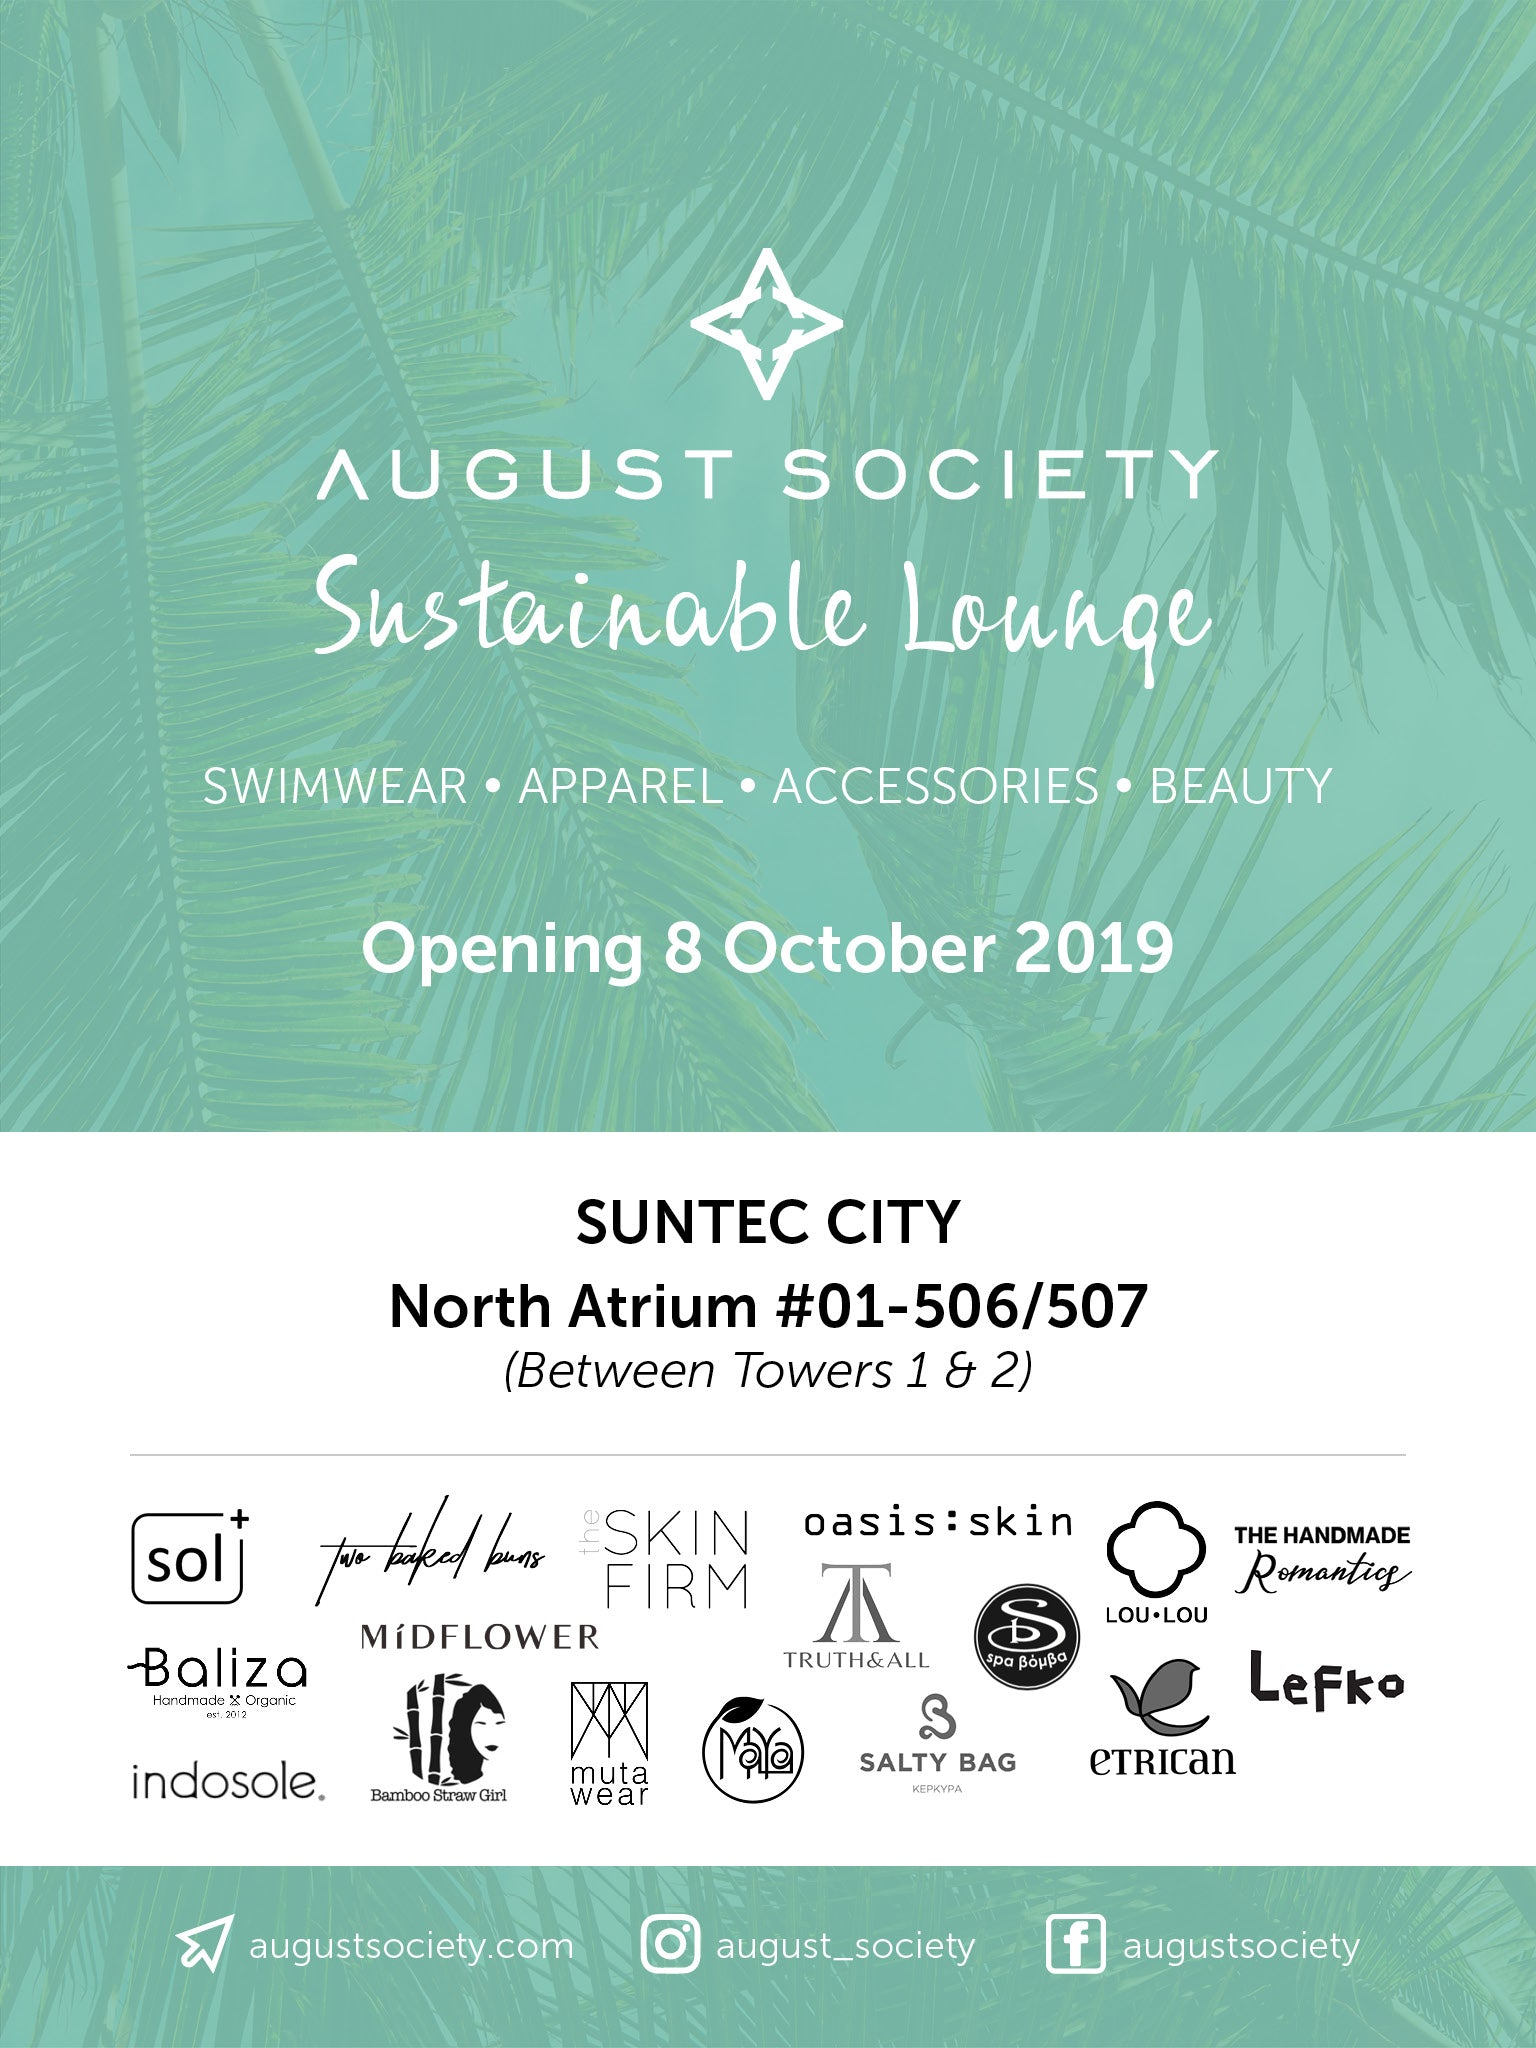 August Society Sustainable lounge